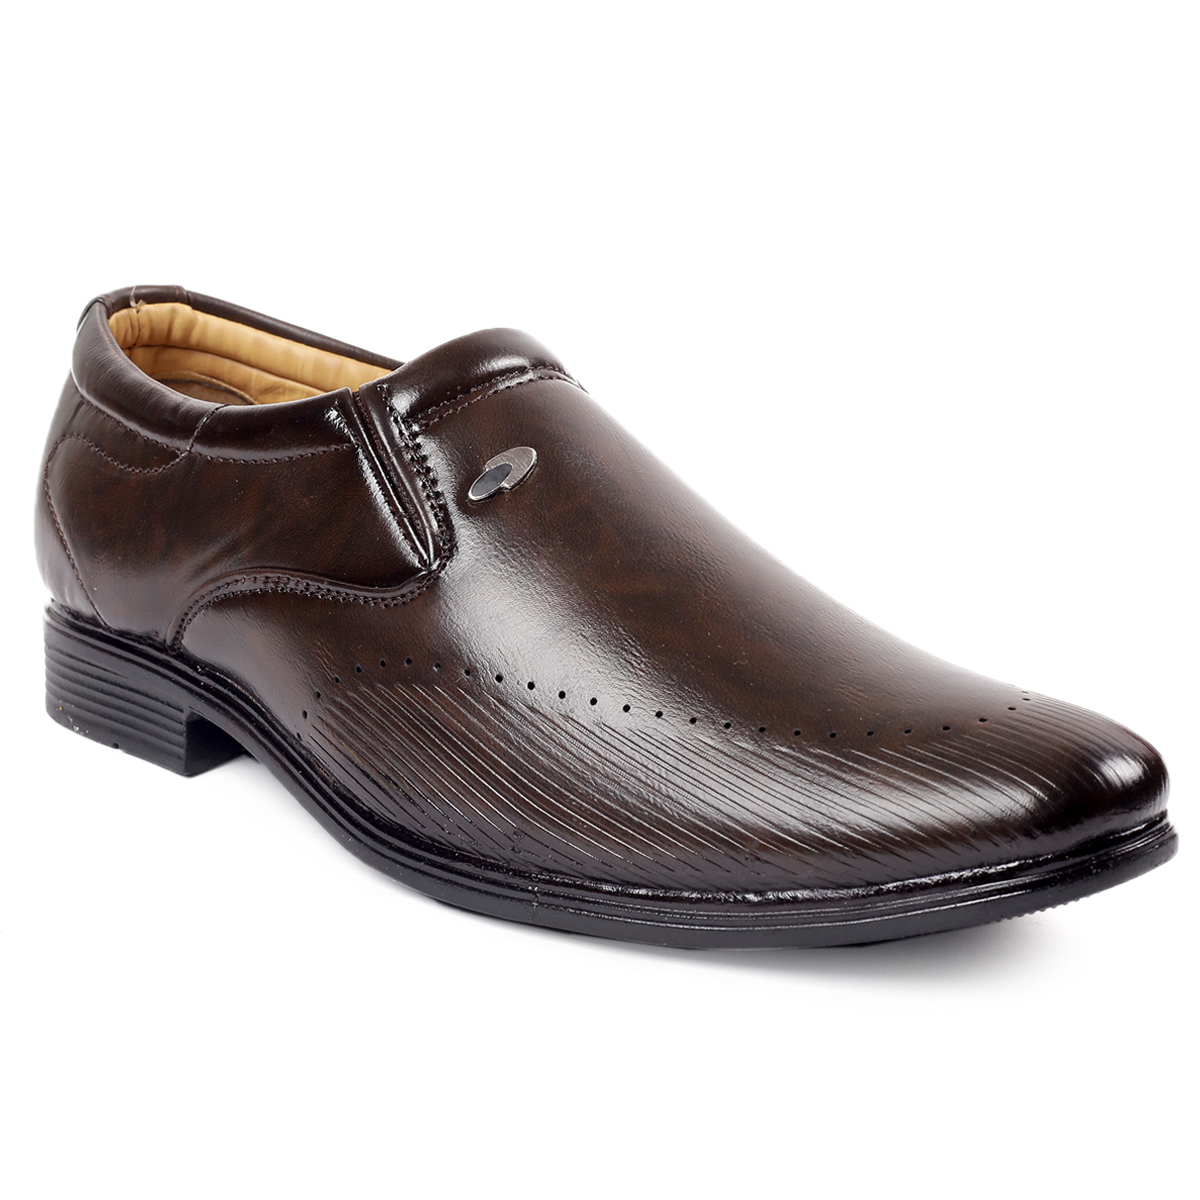 STERA MEN'S PARTYWEAR SYNTHETIC LEATHER MOCASSION FORMAL SHOE.NHT-CAS-4002-BROWN (BROWN, 6-10, 8)